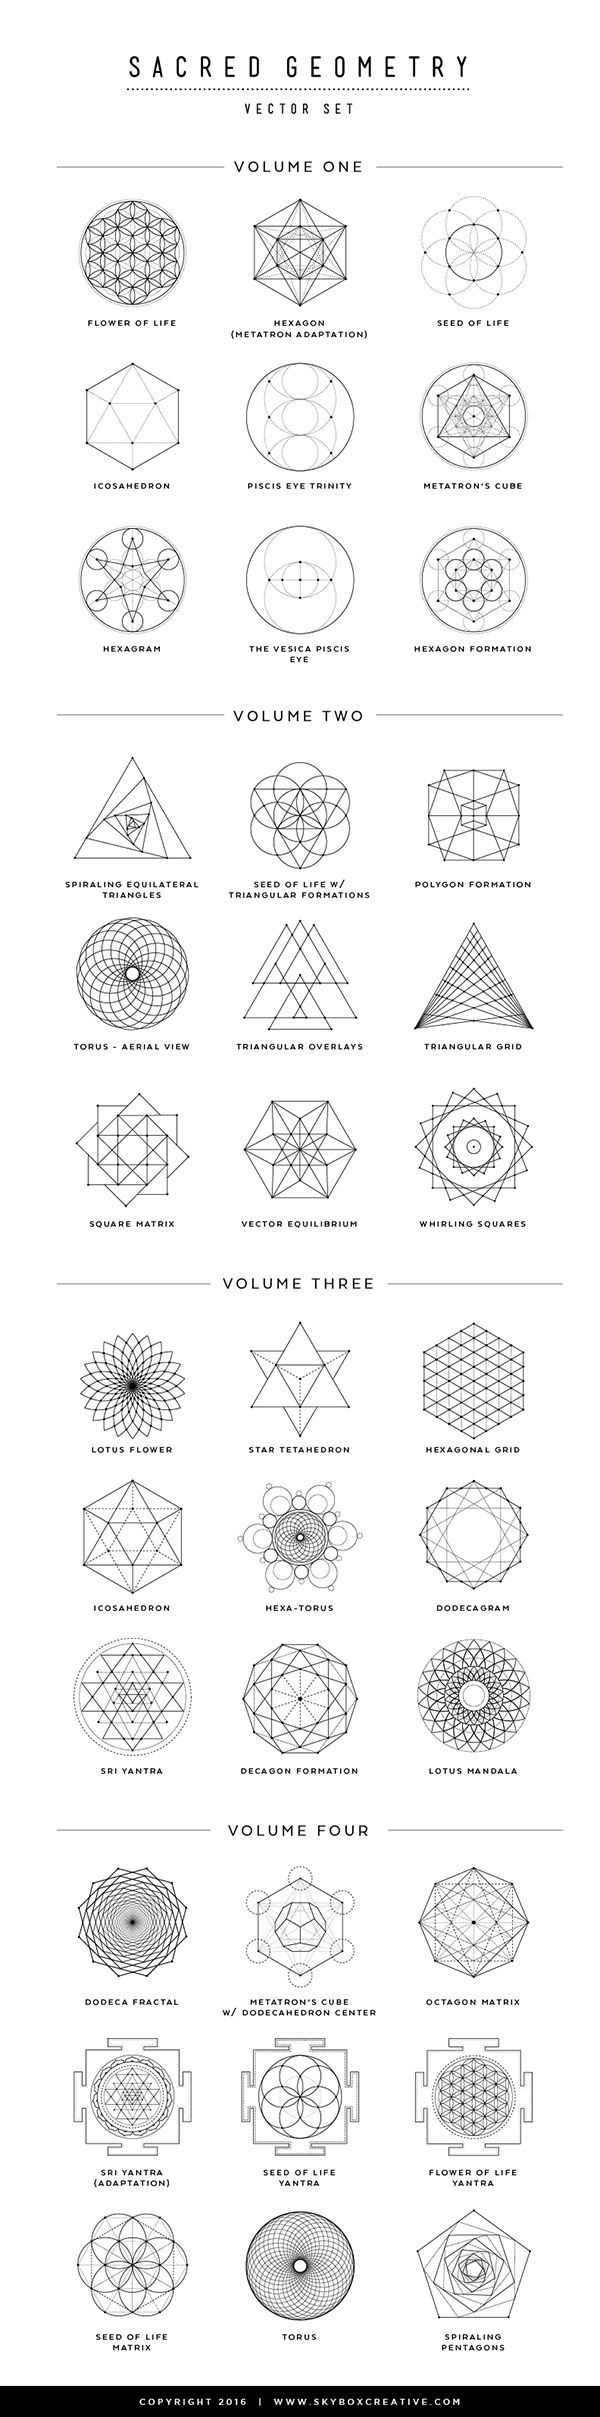 Best 25 sacred geometry ideas on pinterest sacred geometry skyboxcreative i created this pdf guide and short video to go over a few sacred geometry symbols their names and meanings learn more and how to create buycottarizona